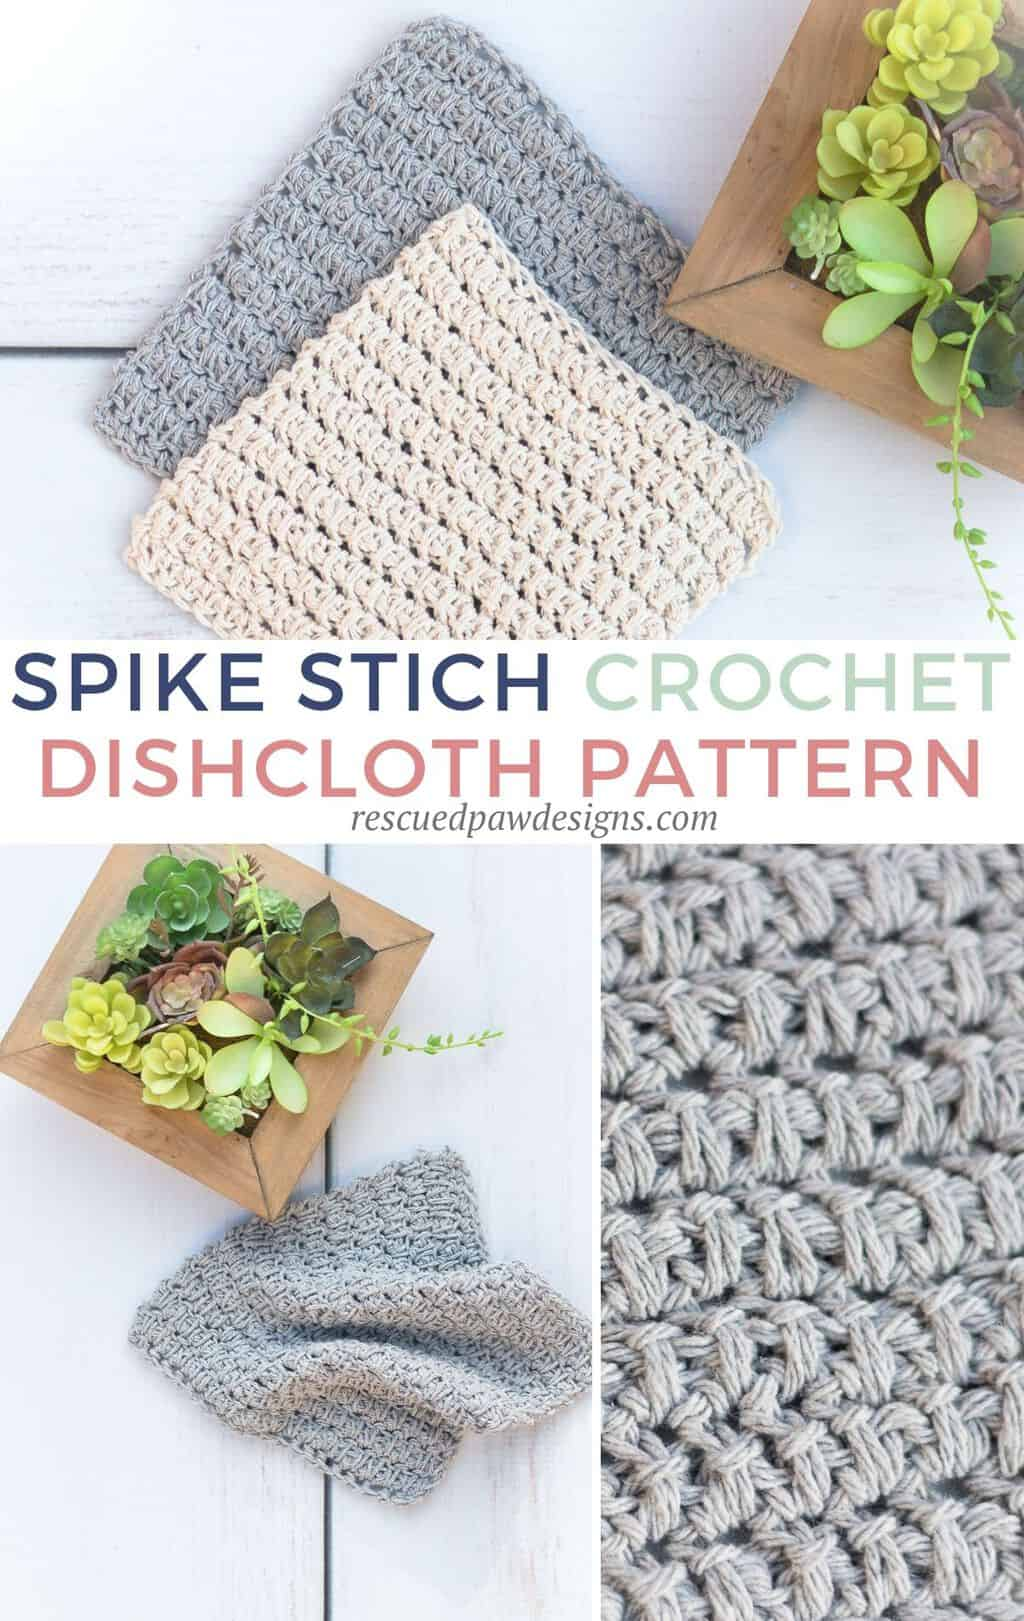 Dishcloth Crochet Pattern using the spike stitch in two sizes.